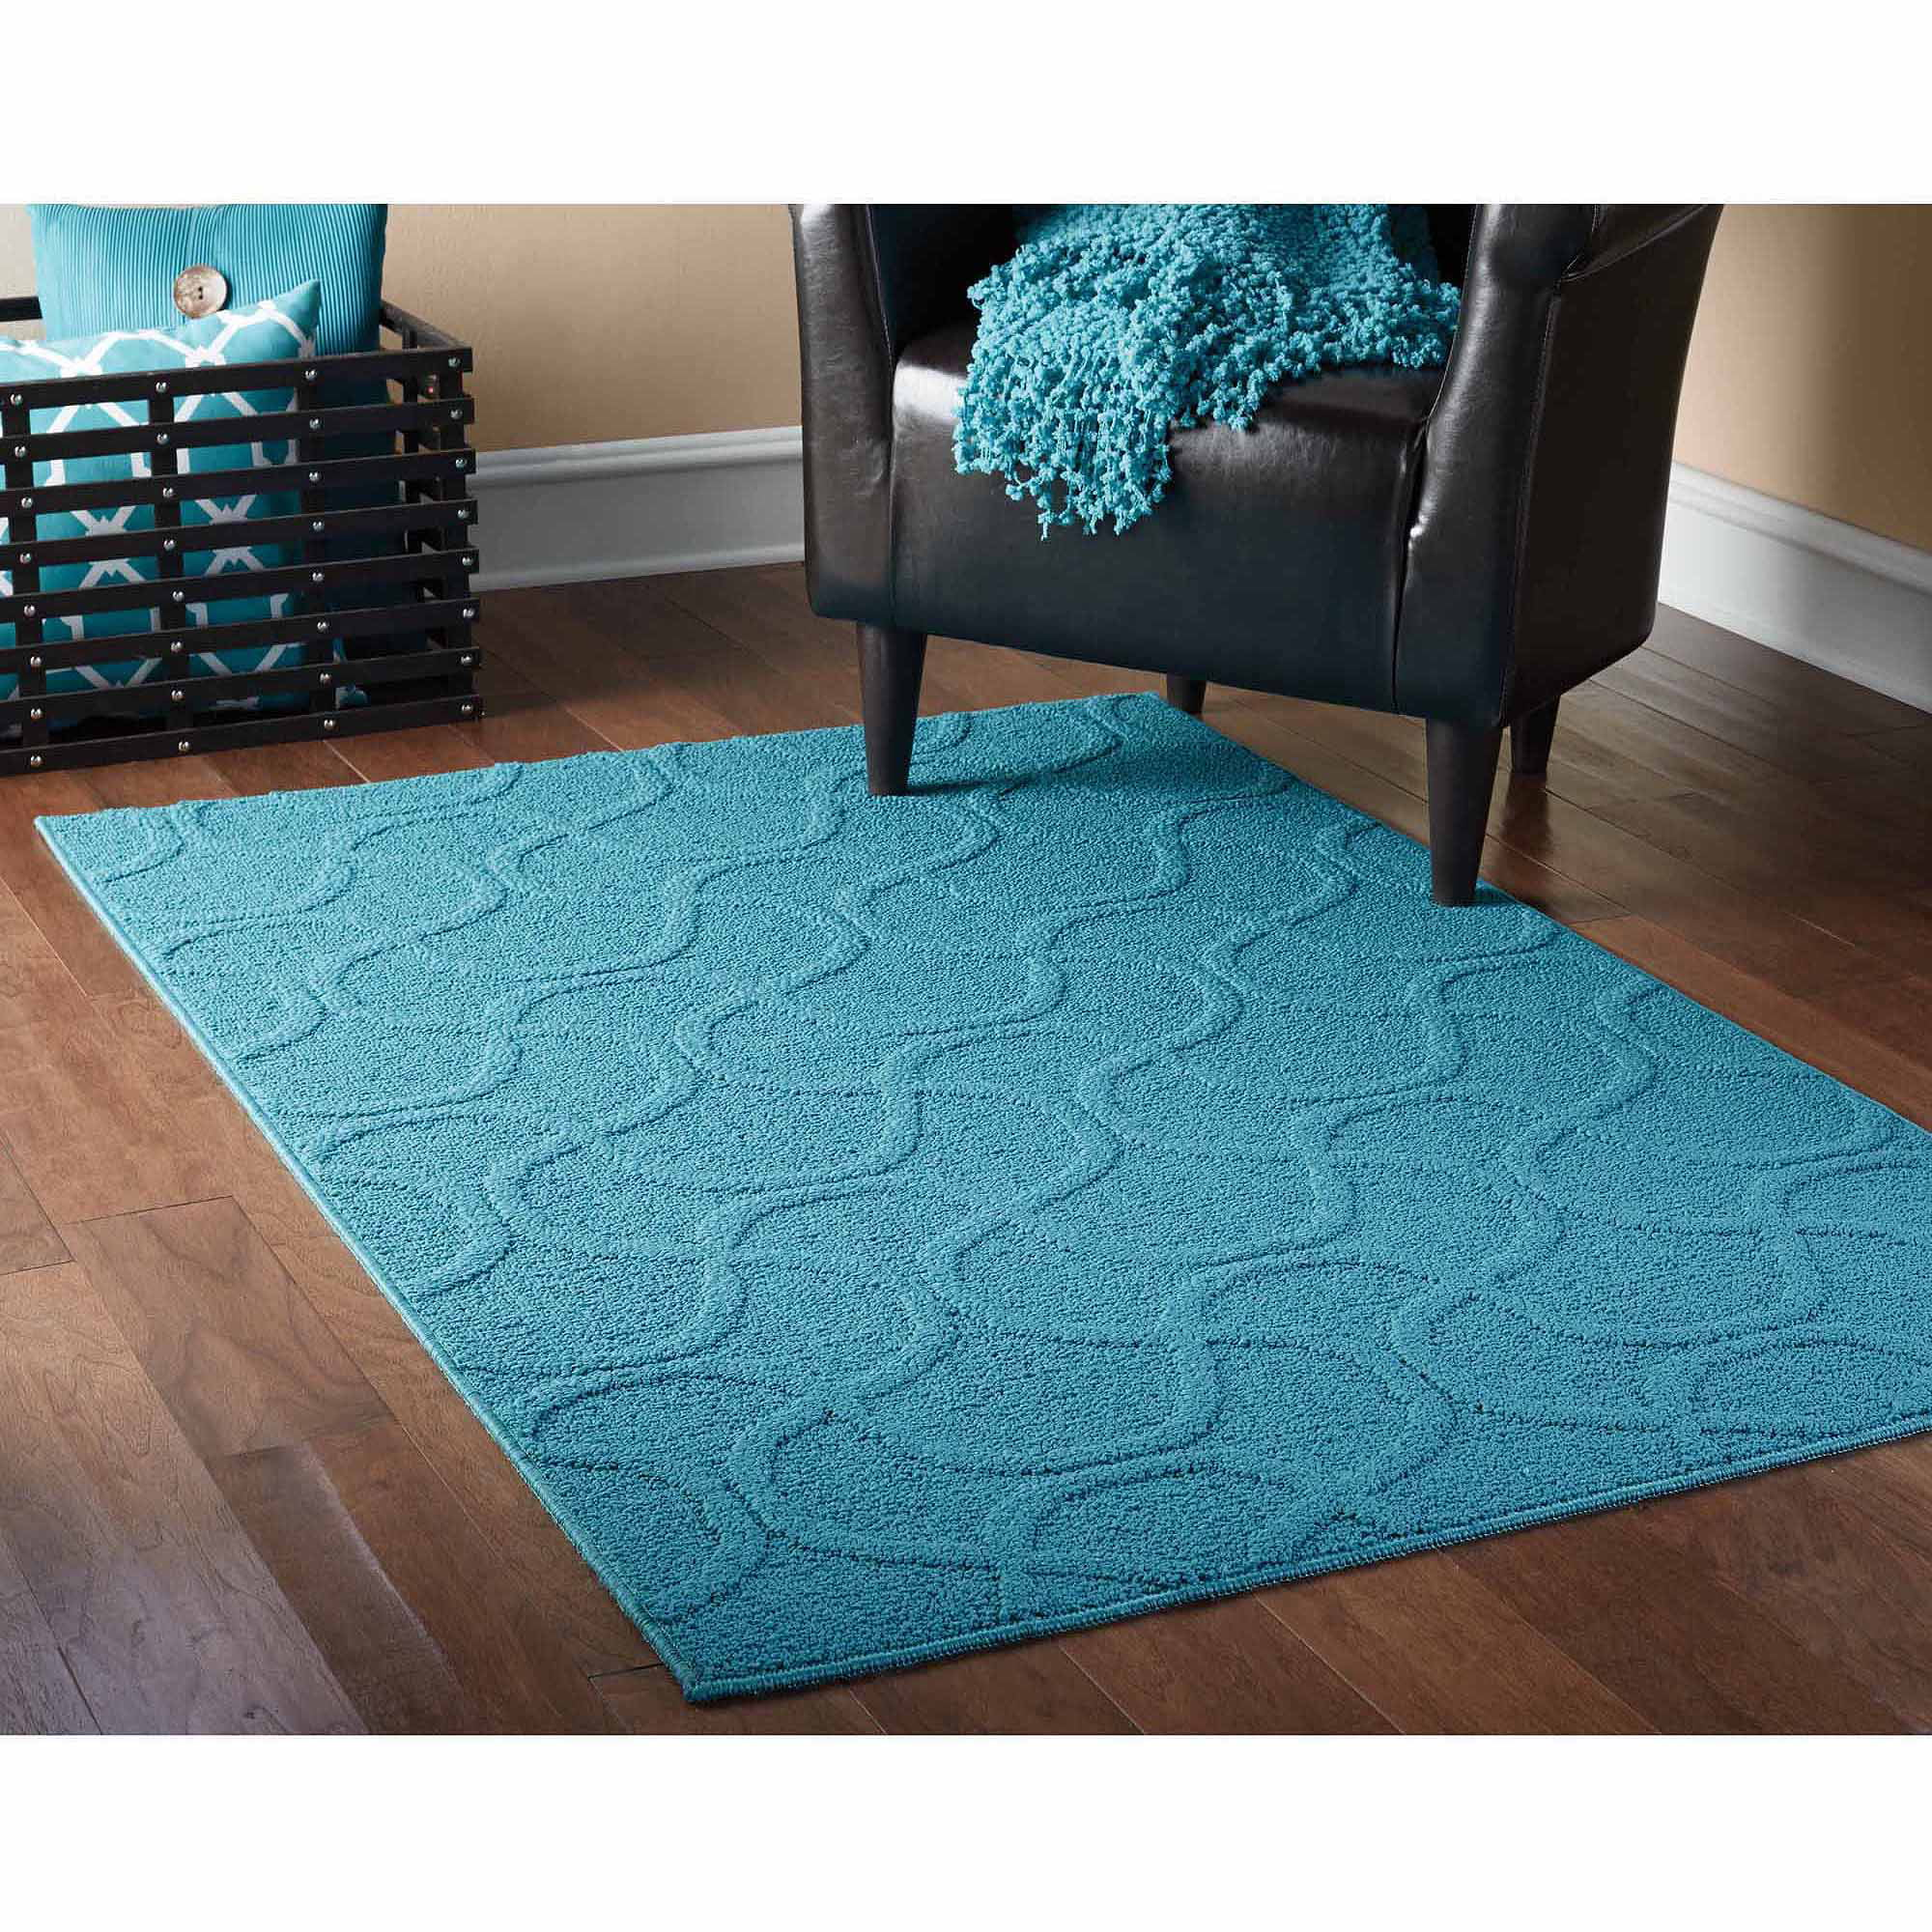 Mainstays Drizzle Area Rug, Teal by Generic